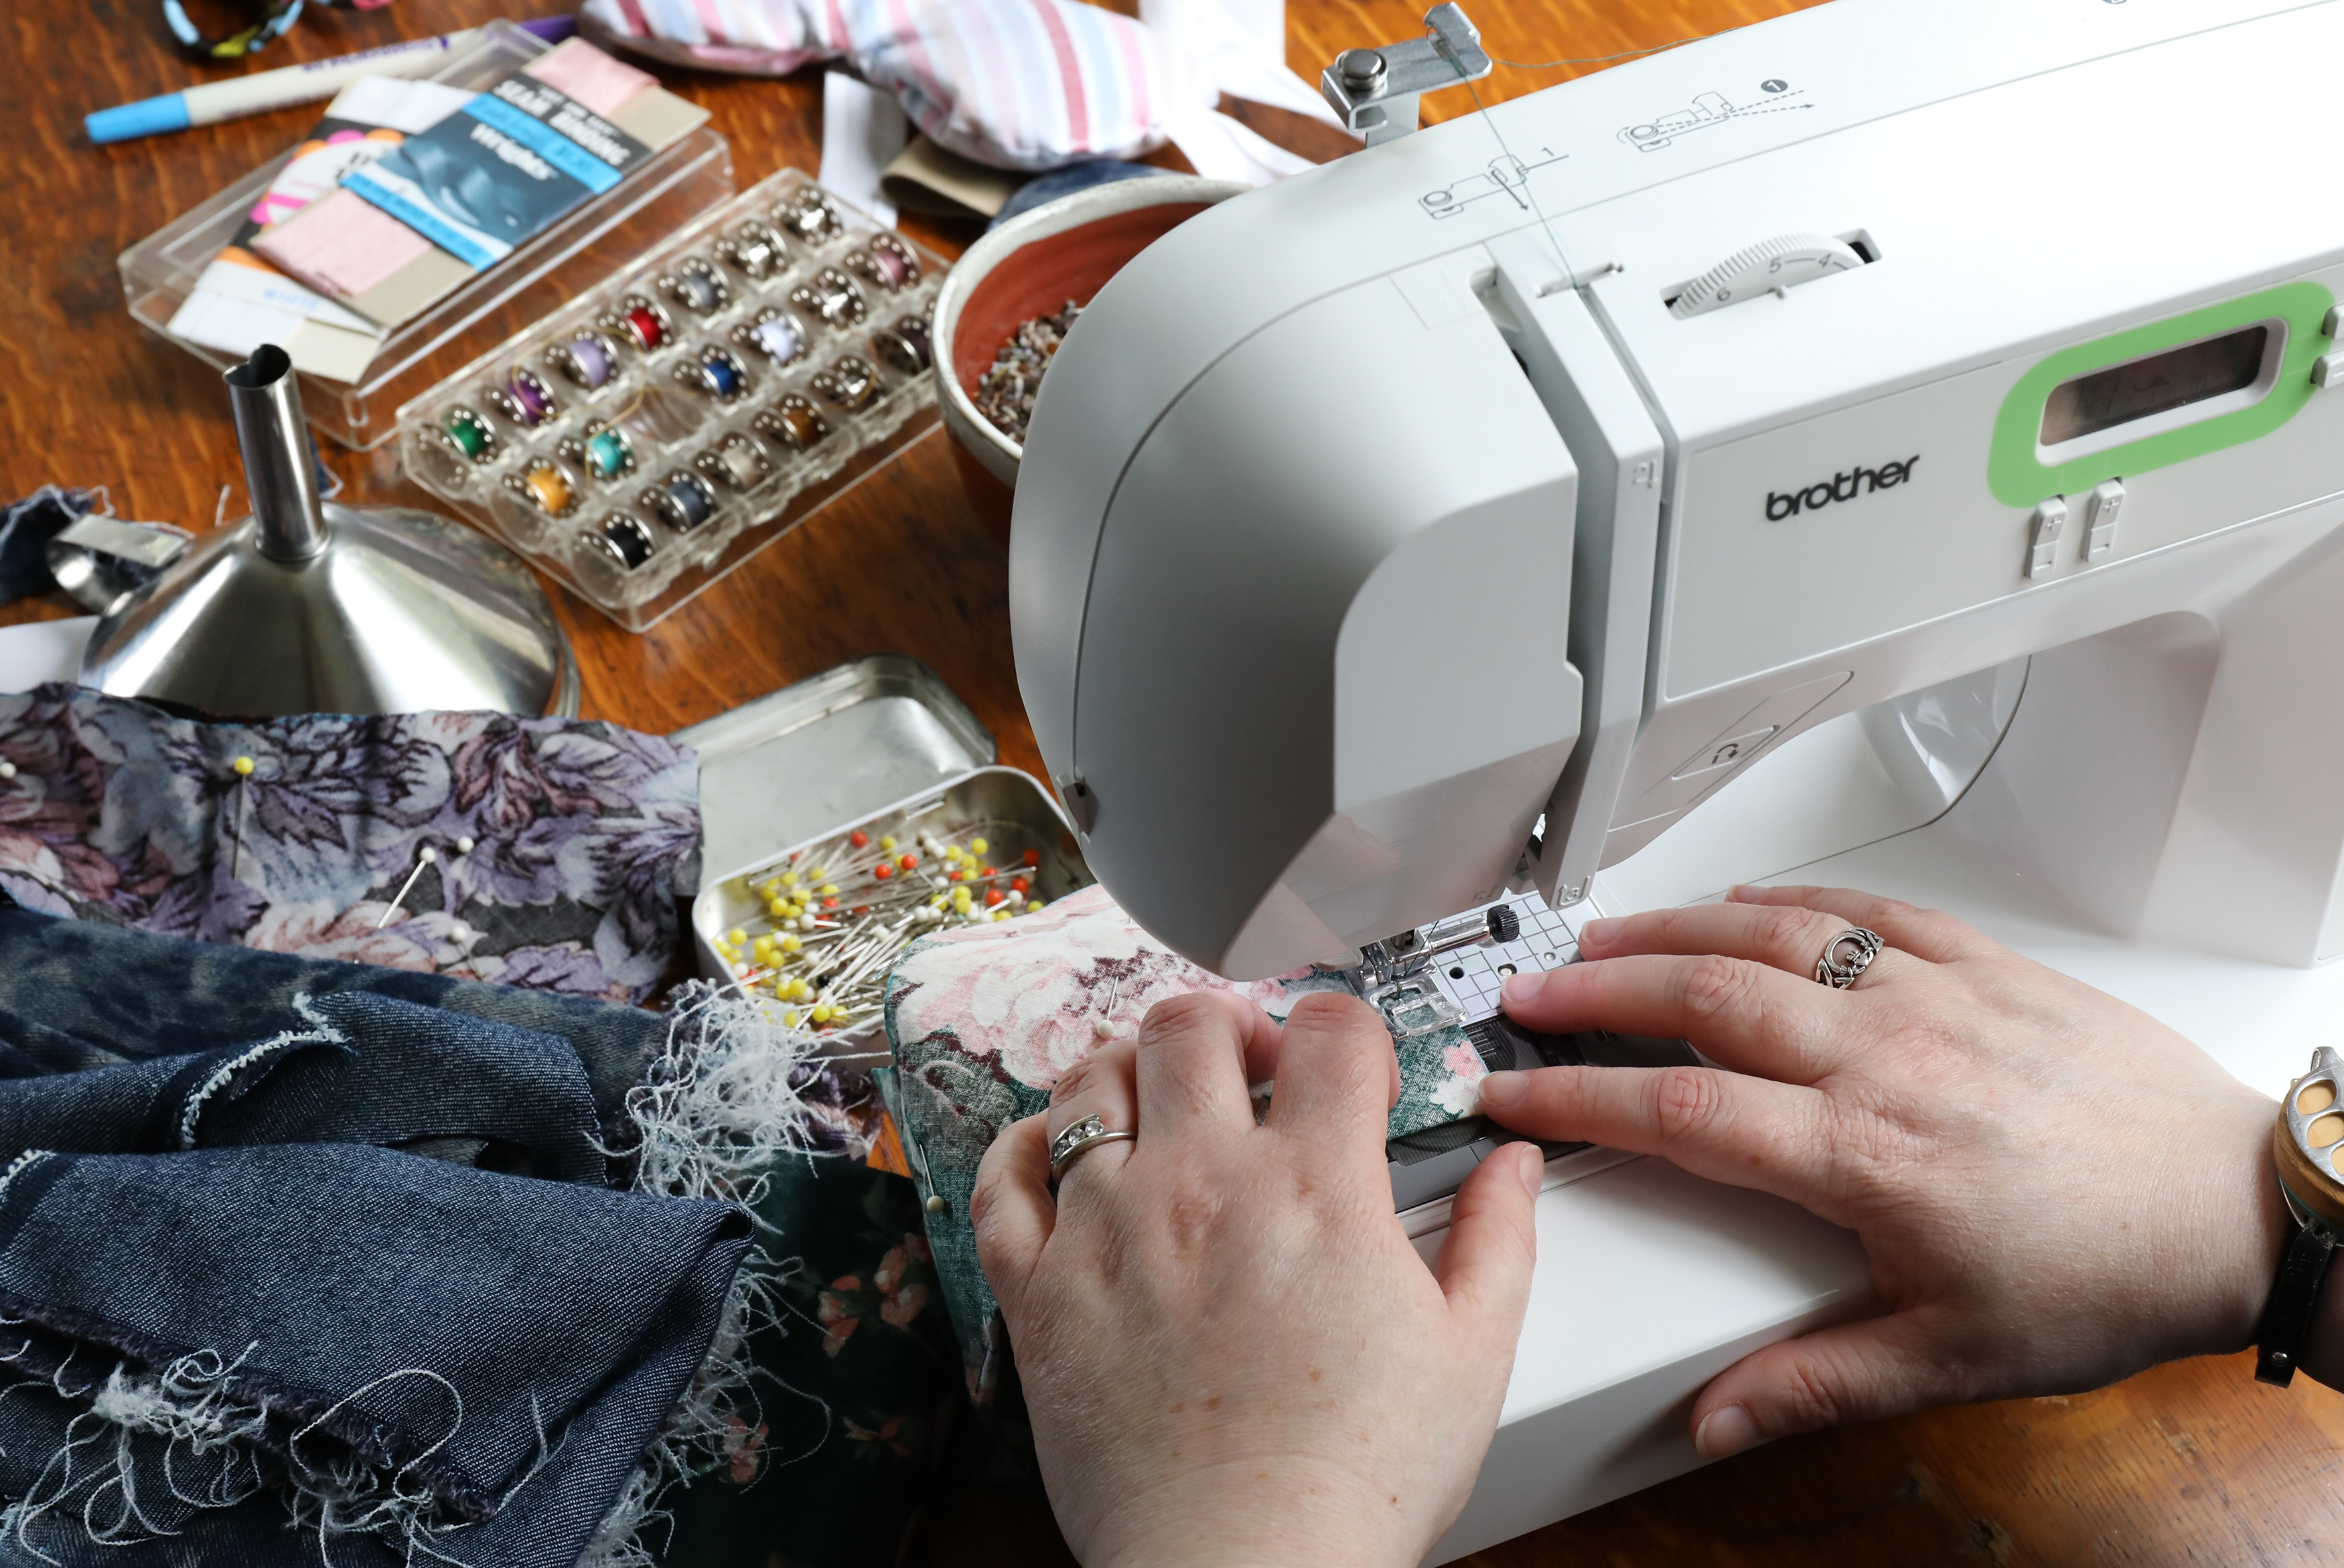 hands on sewing machine sewing fabric to make buckwheat lavender eye pillows